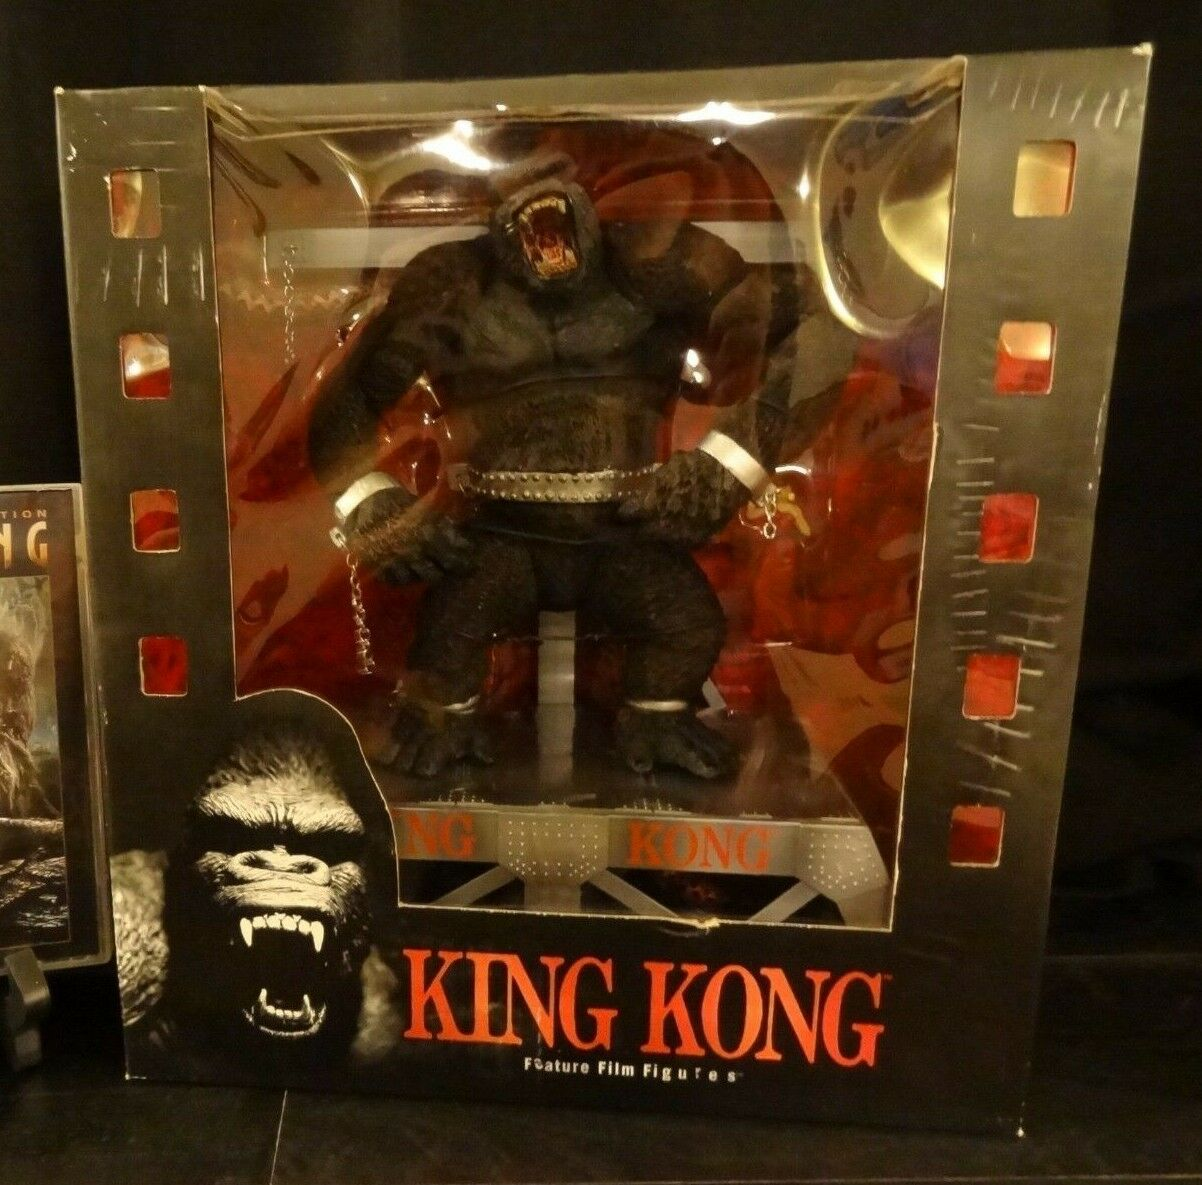 Mcfarlane King Kong Deluxe Box Set - Movie Maniacs